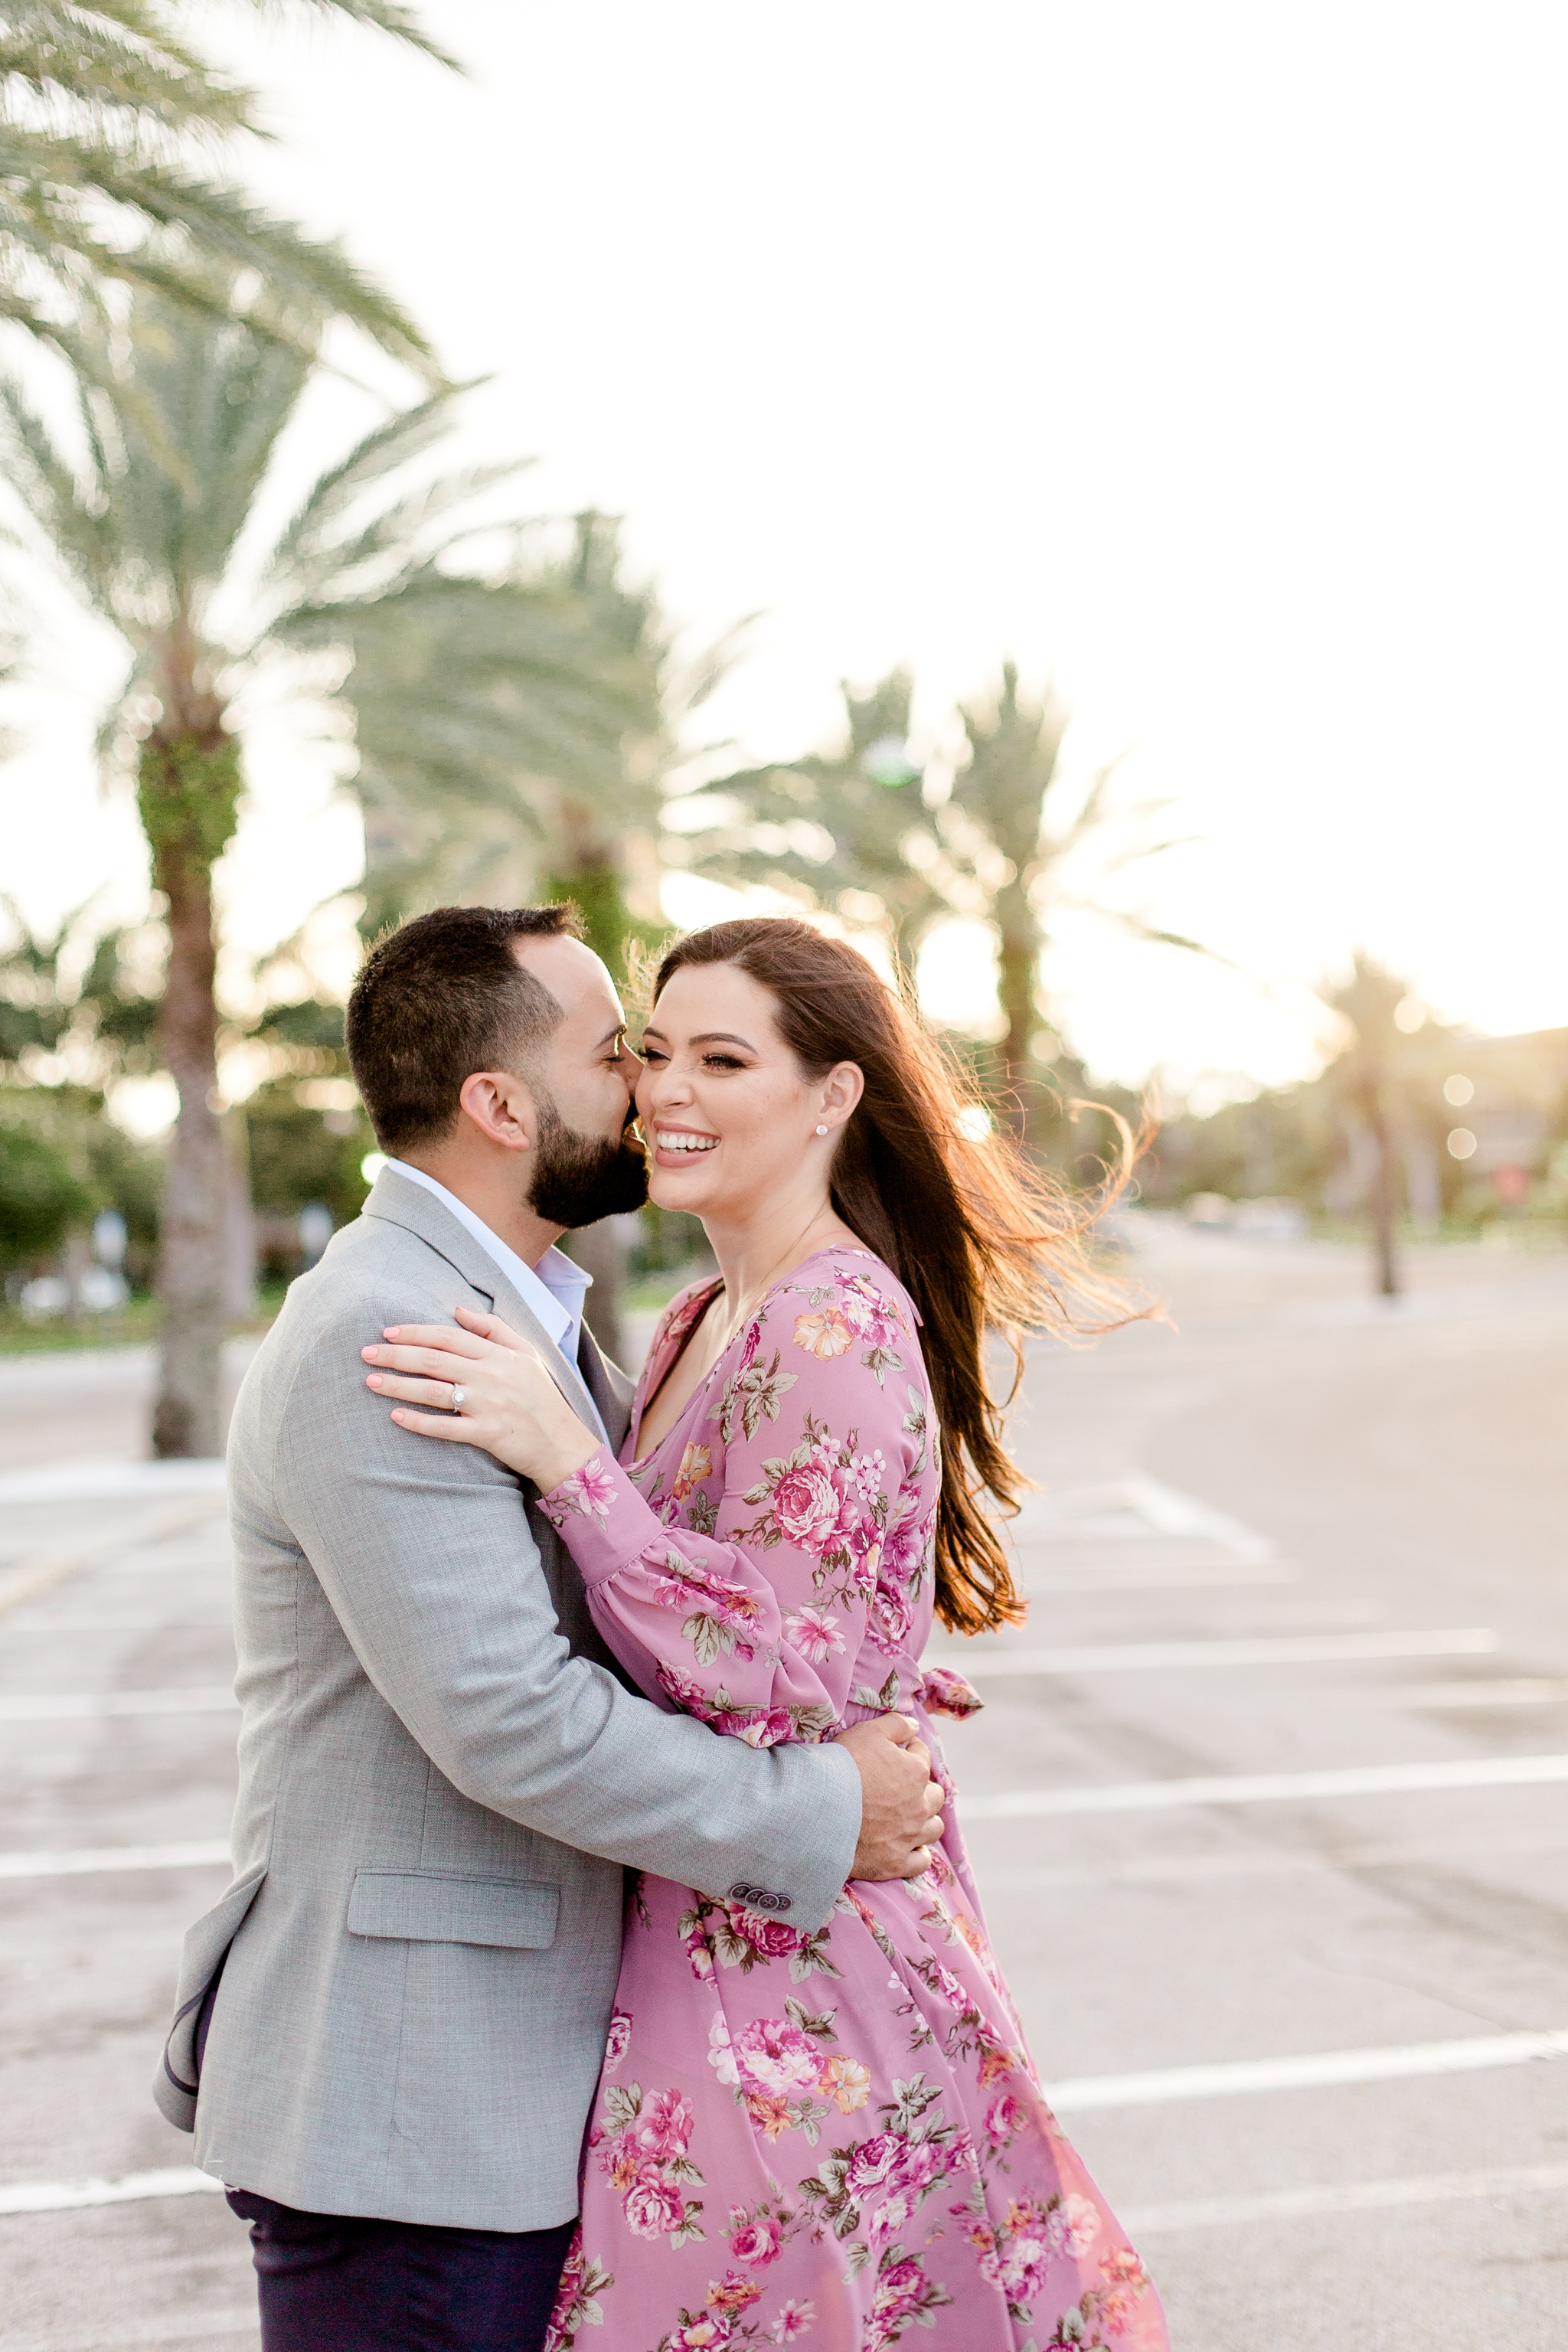 St-pete-florida-engagement-session-nicole-mike-I58A6947.jpg